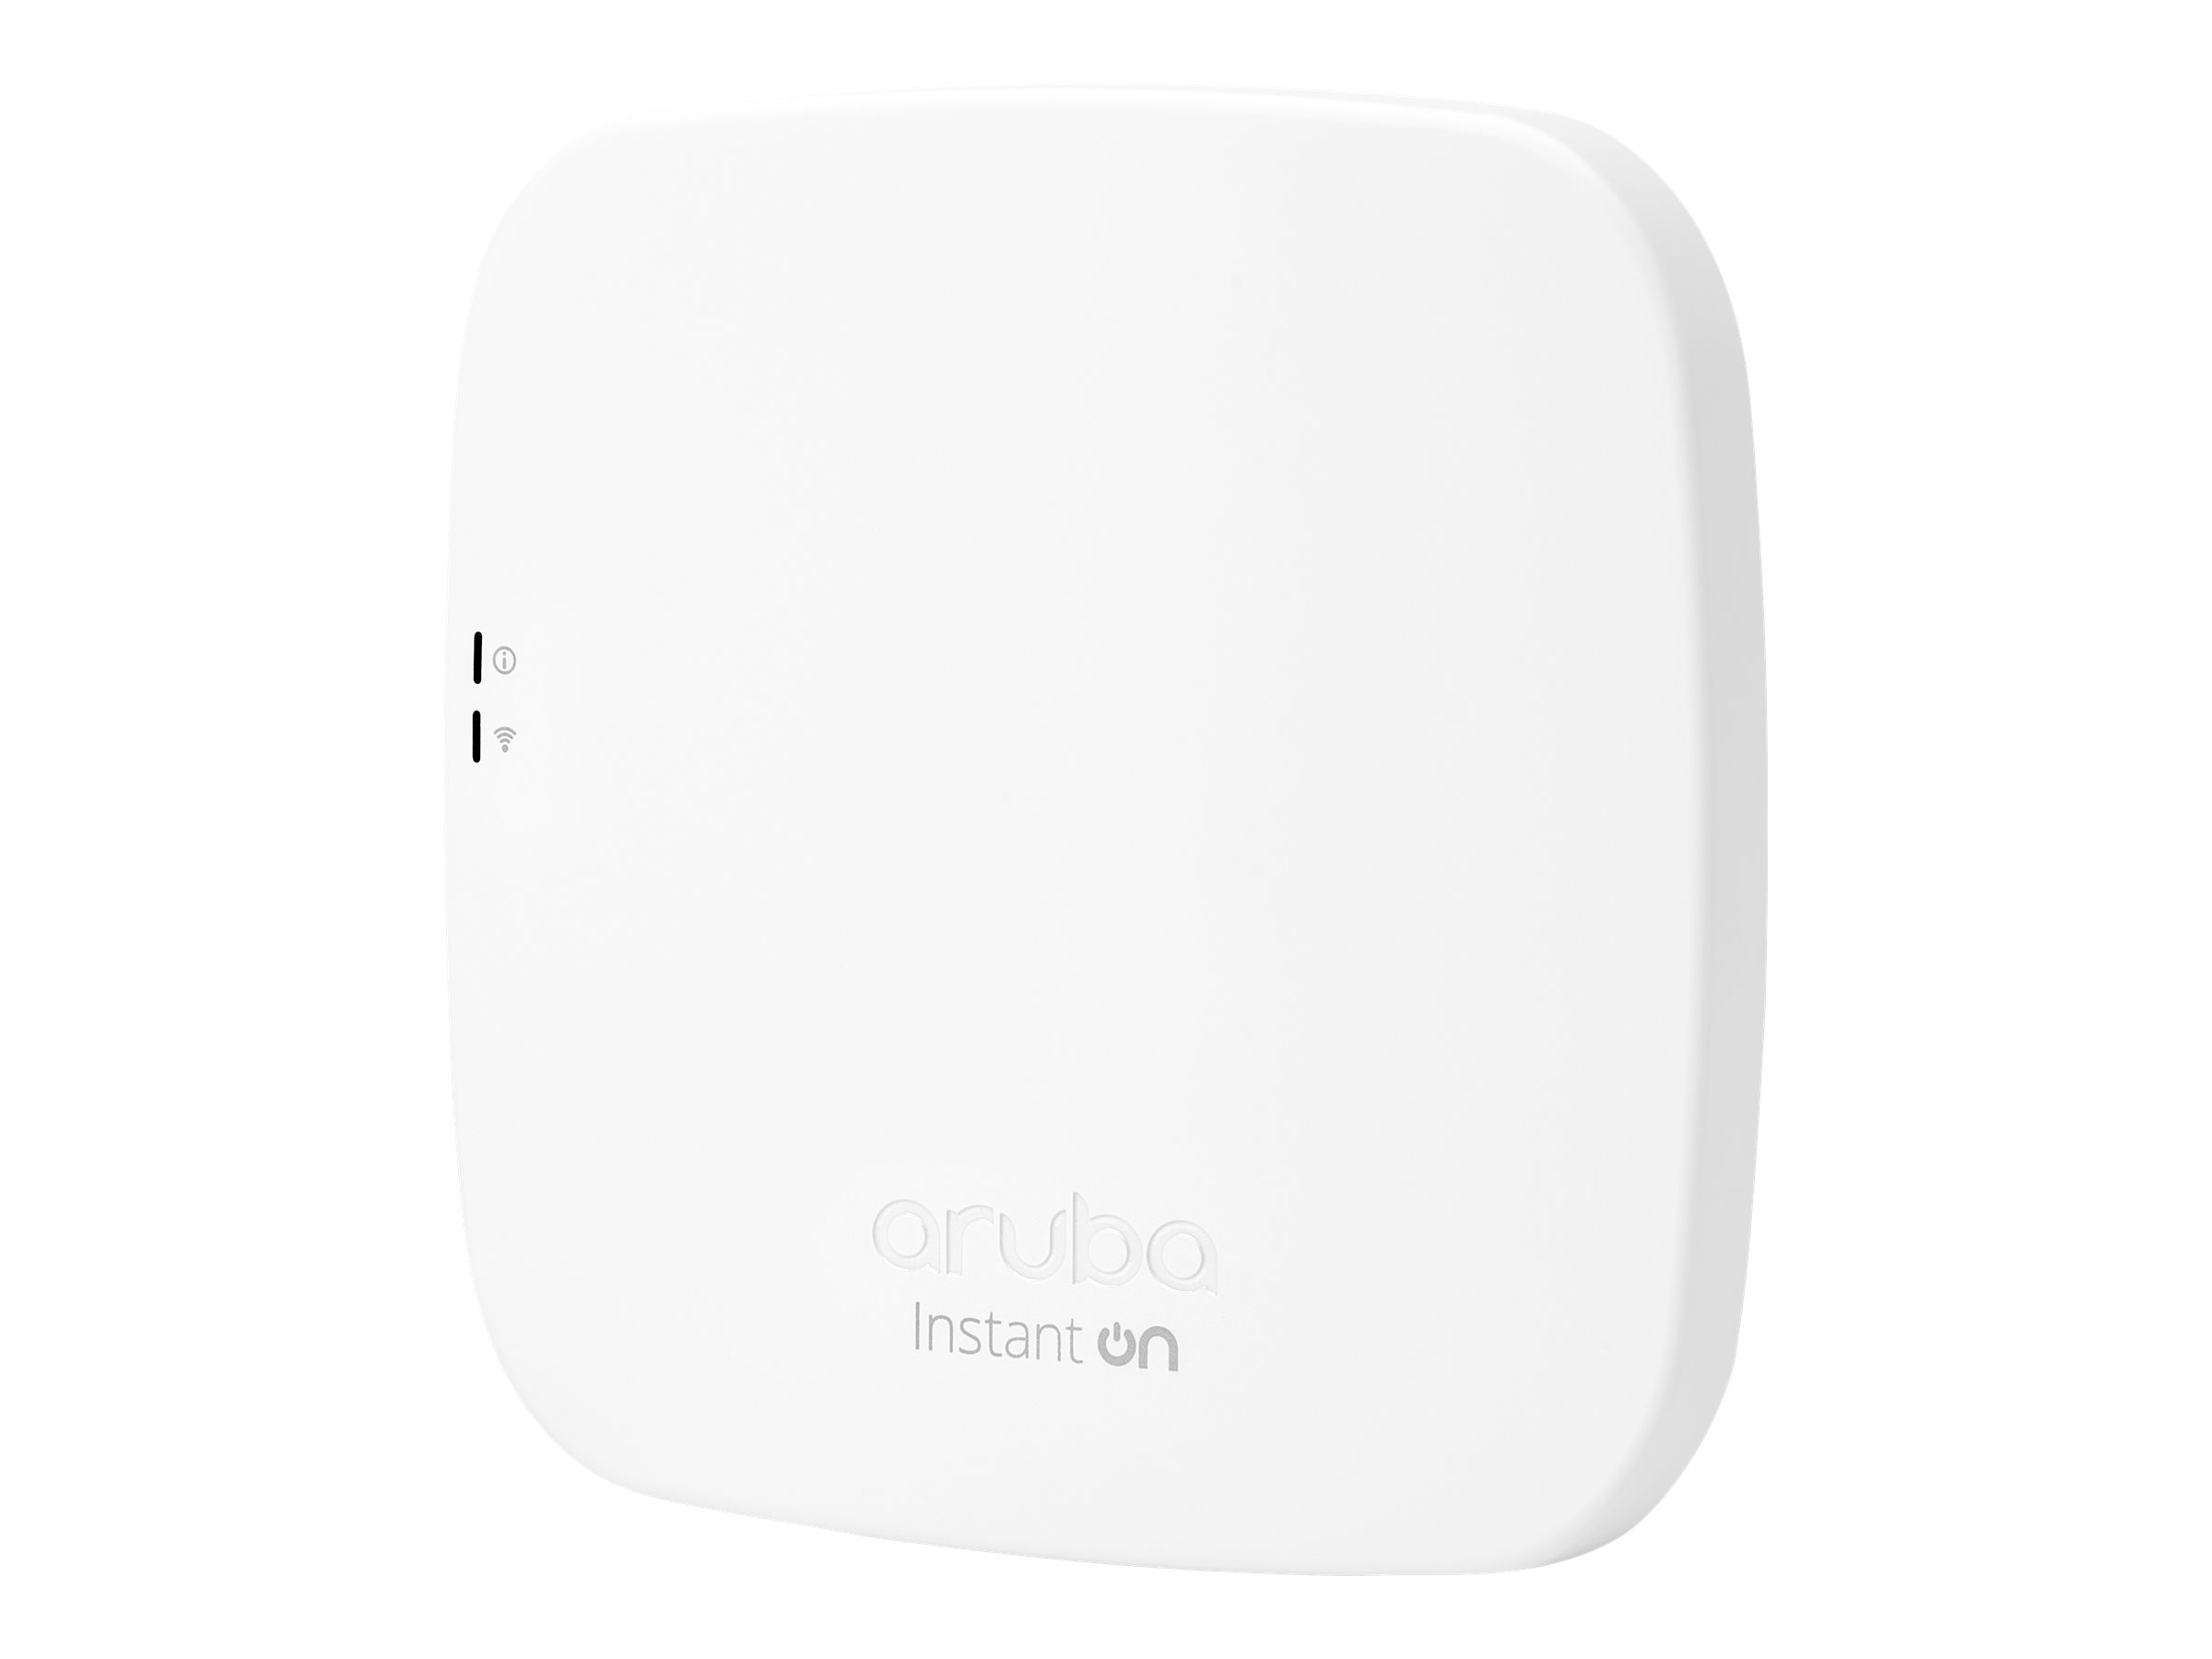 Hpe aruba instant on ap12 rw indoor ap with dc power adapter and cord eu bundle funkbasisstation 802 11ac wave 2 bluetooth wi fi 5 2 4 ghz 5 ghz 11668517 r3j24a